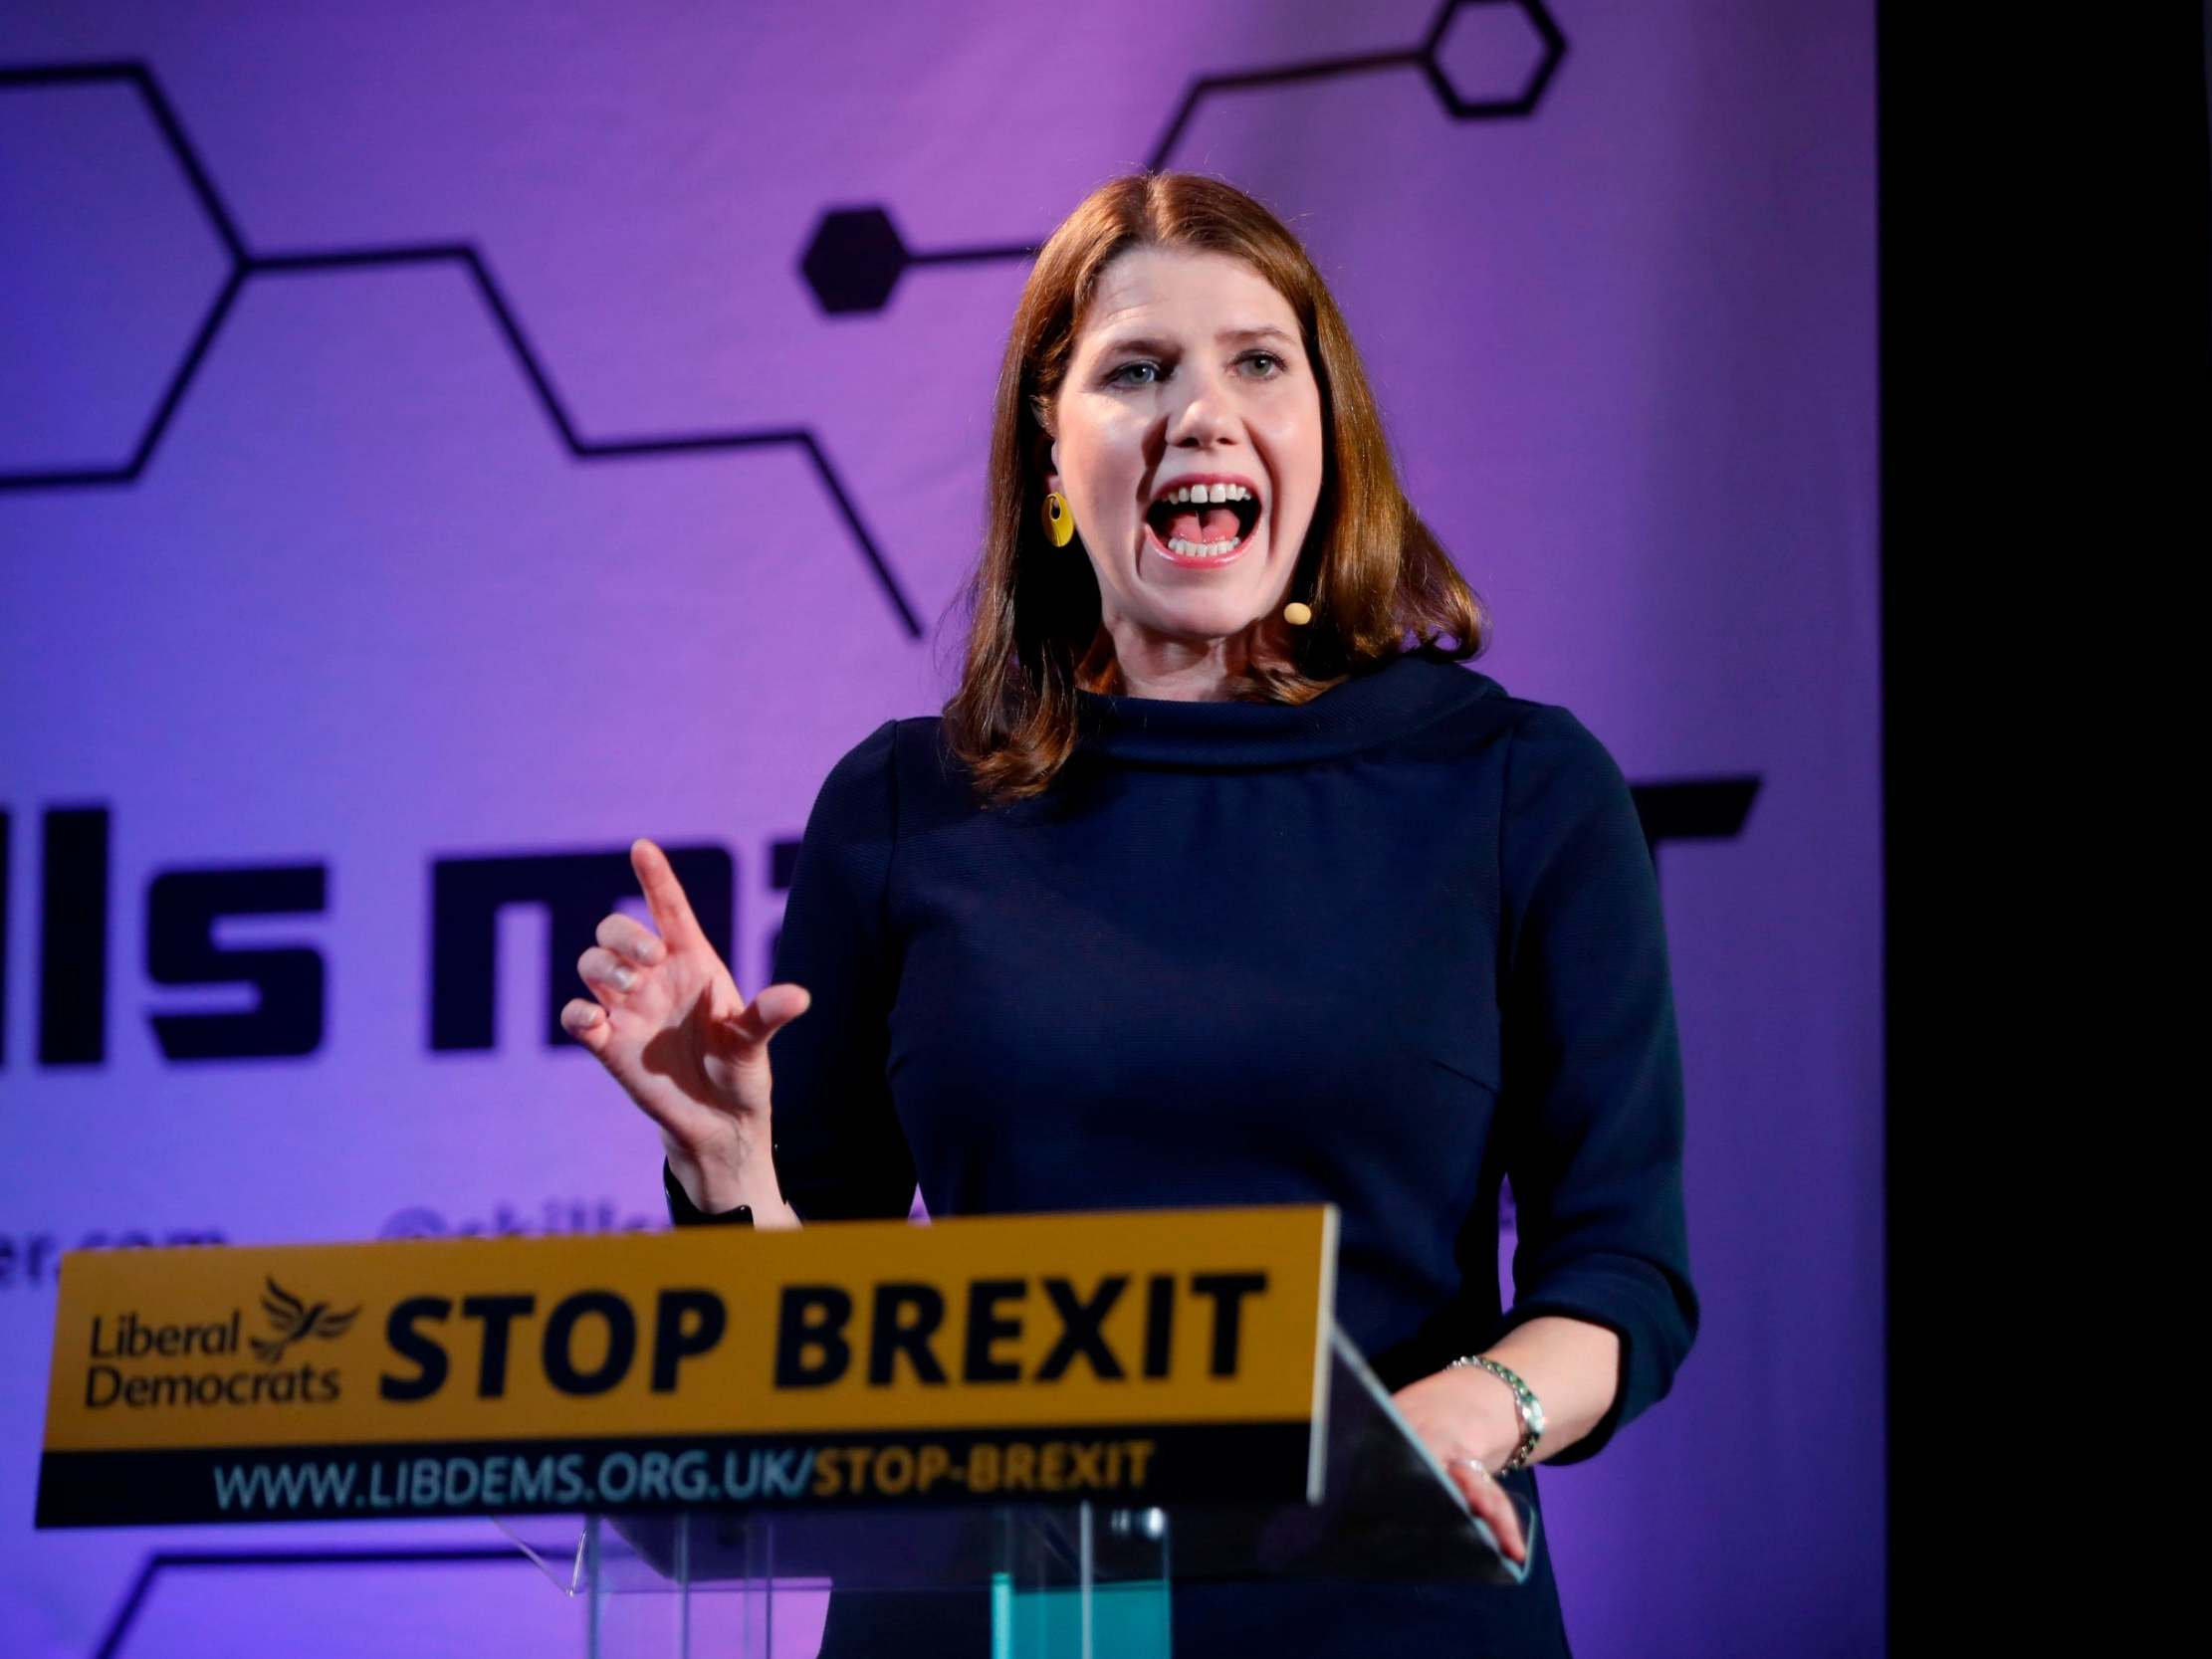 Jo Swinson, your supporters will drop like flies if you abandon a second referendum on Brexit